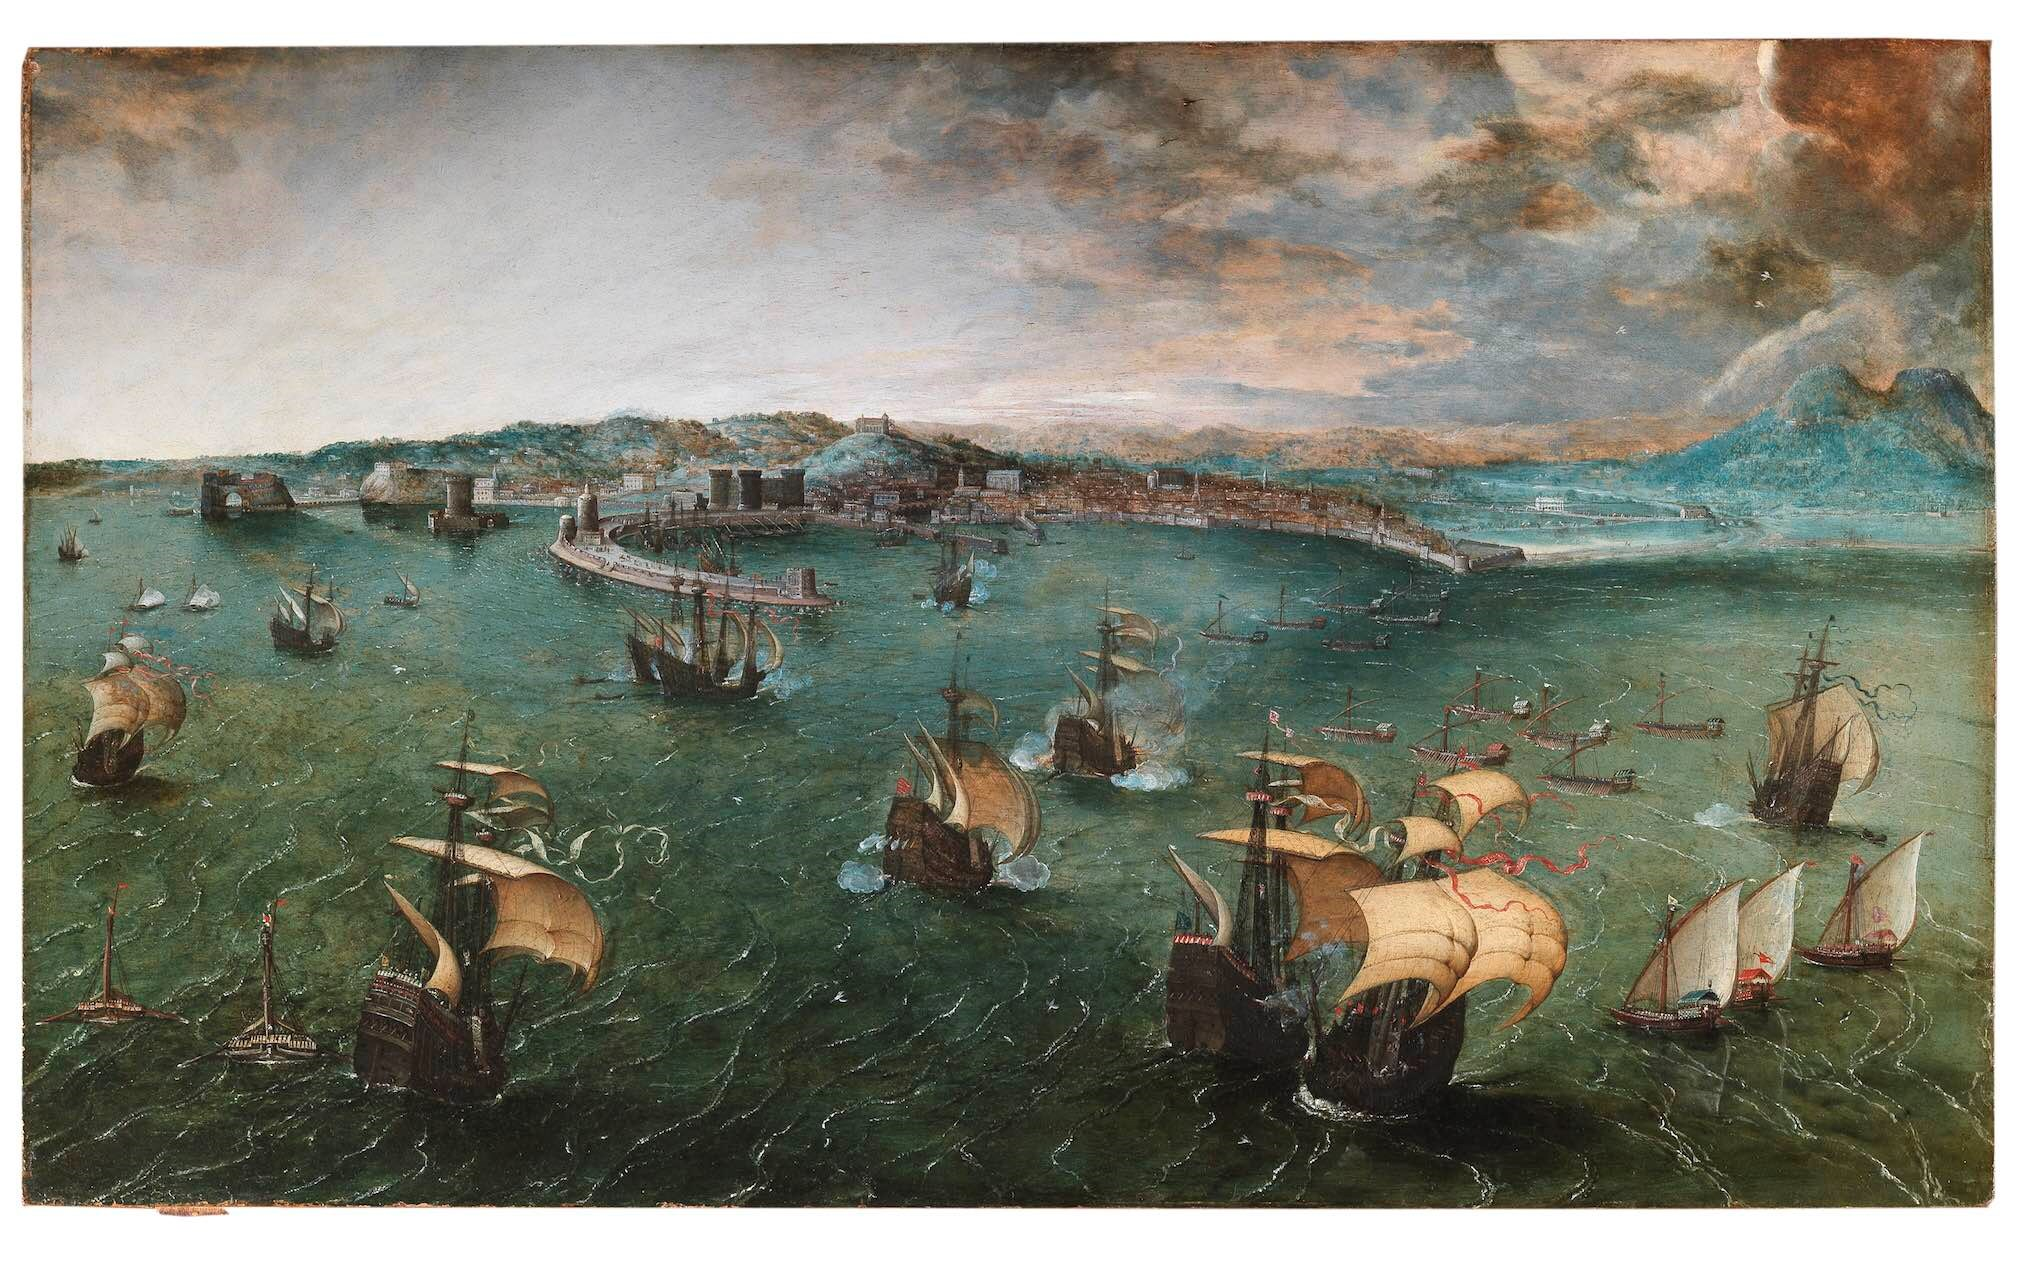 Naval Battle in the Gulf of Naples attributed to Pieter Bruegel the Elder